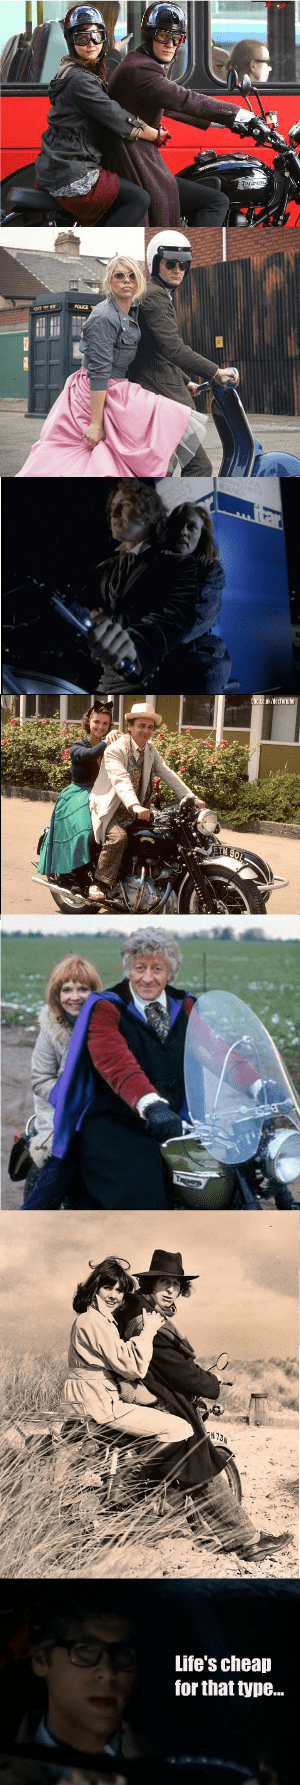 motorcycles,doctor who,bbc